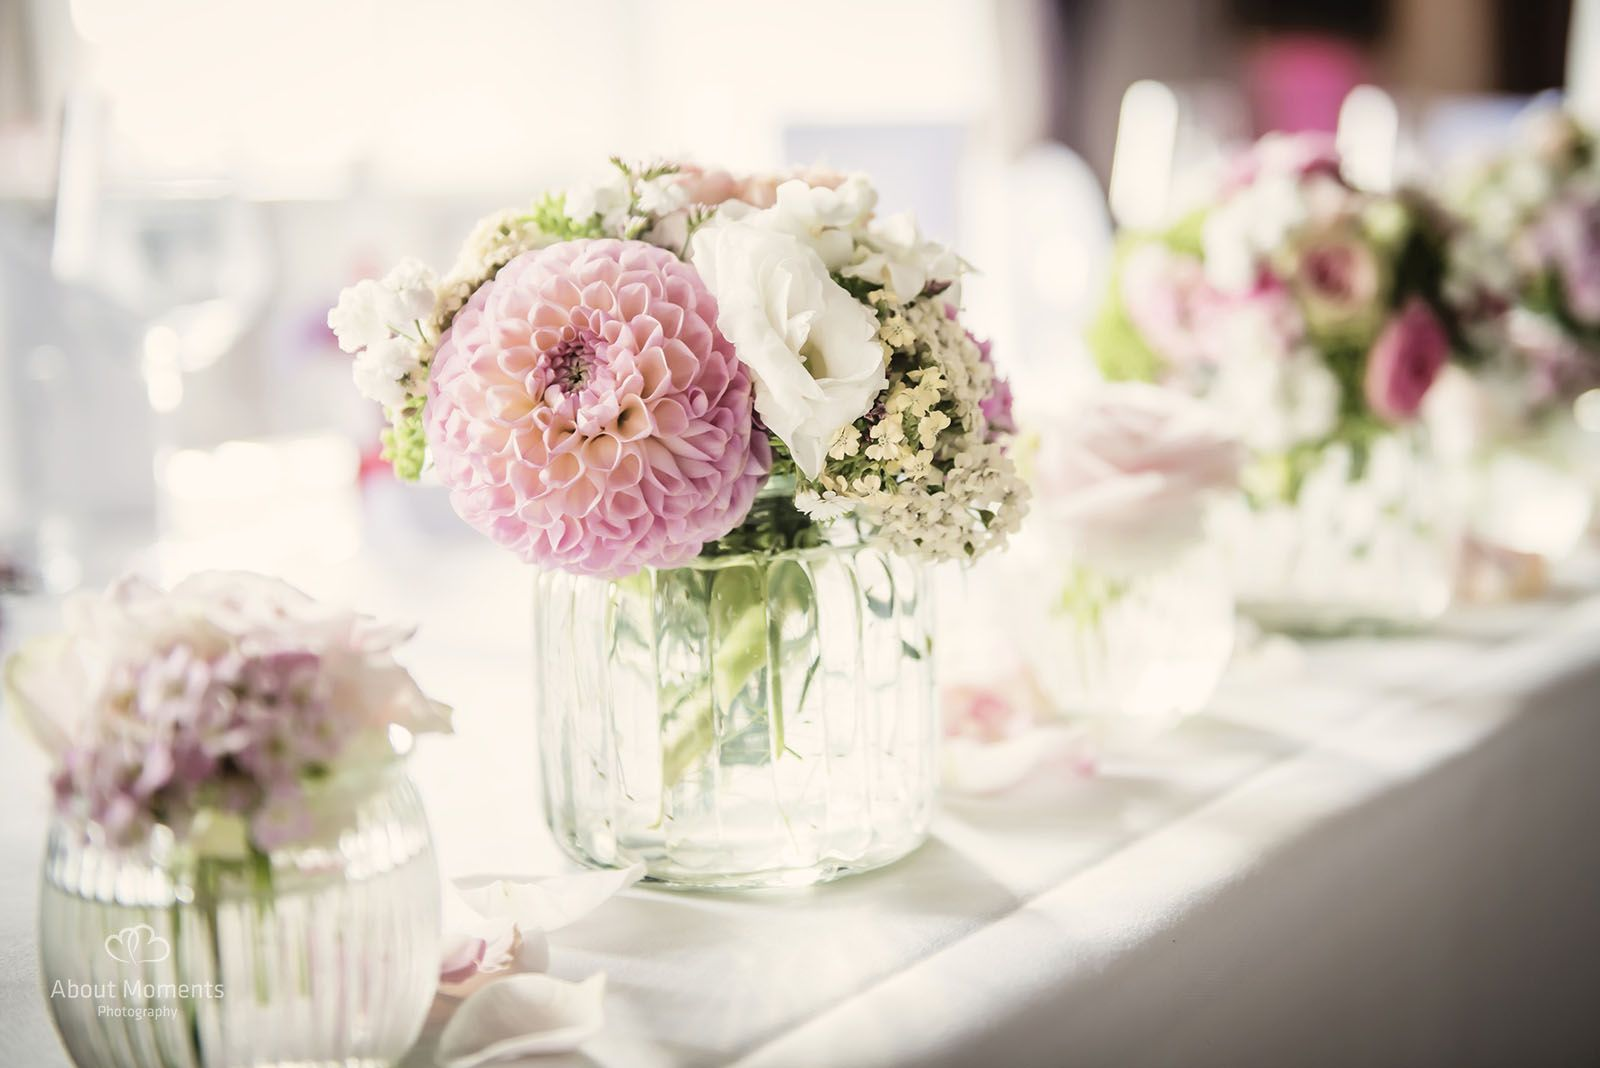 wasserschloss milels fleurs vintage dahlien tischdeko pinterest more wedding and rustic. Black Bedroom Furniture Sets. Home Design Ideas